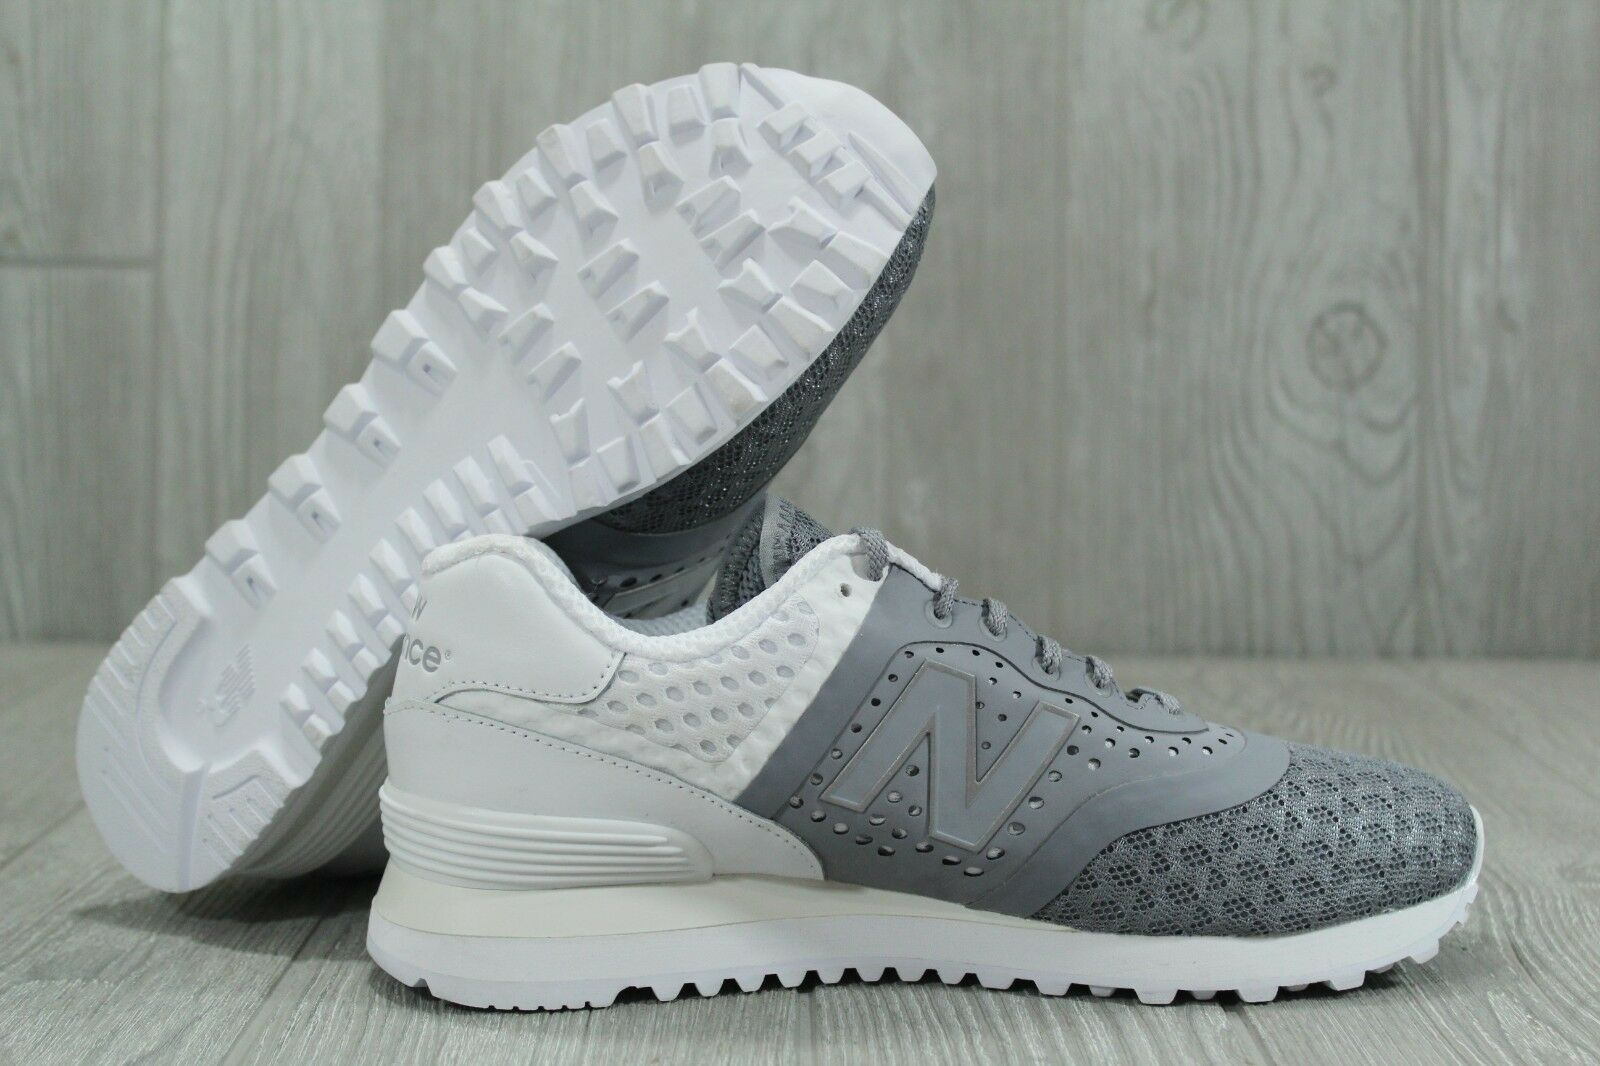 New Balance 574 Re Engineered 'Breathe' Collection Available